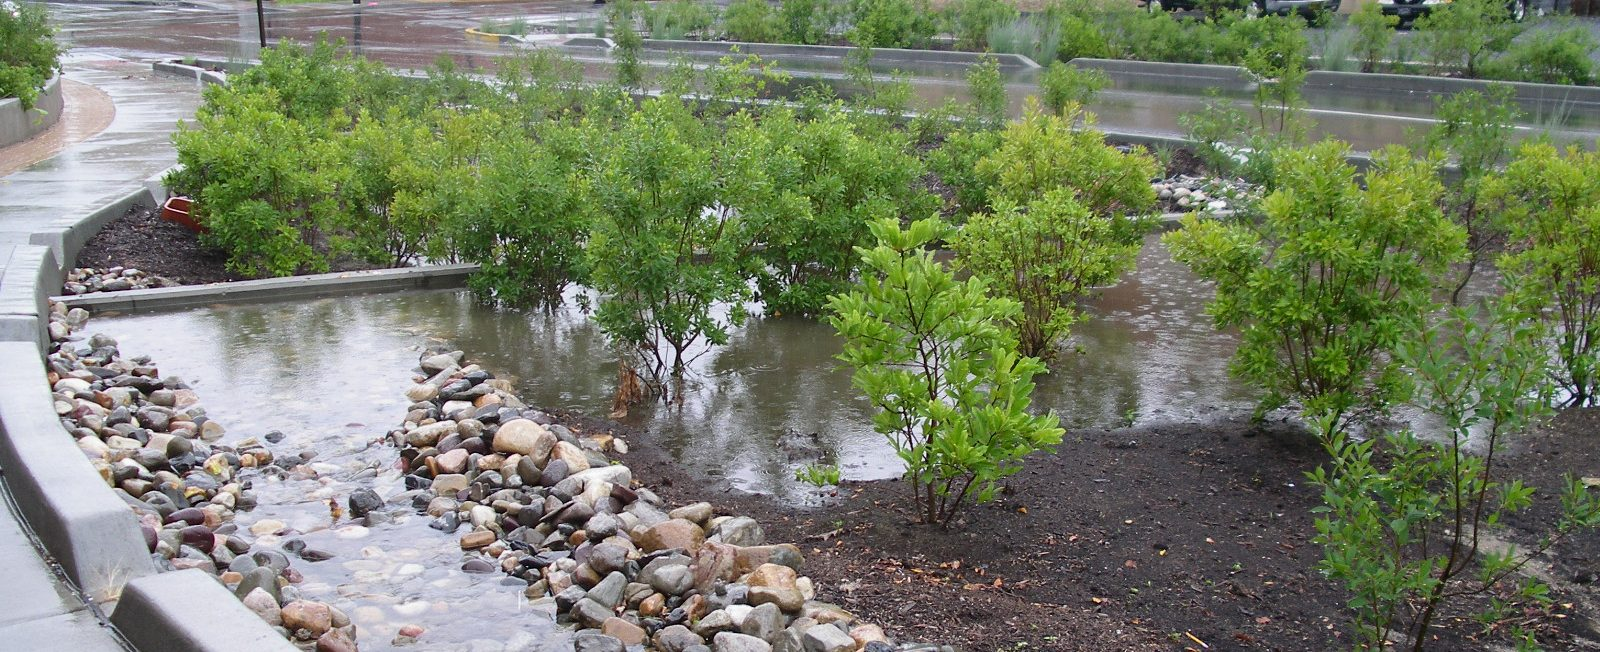 Technical Bulletin No 9: Nutrient Accounting Methods to Document Local Stormwater Load Reductions